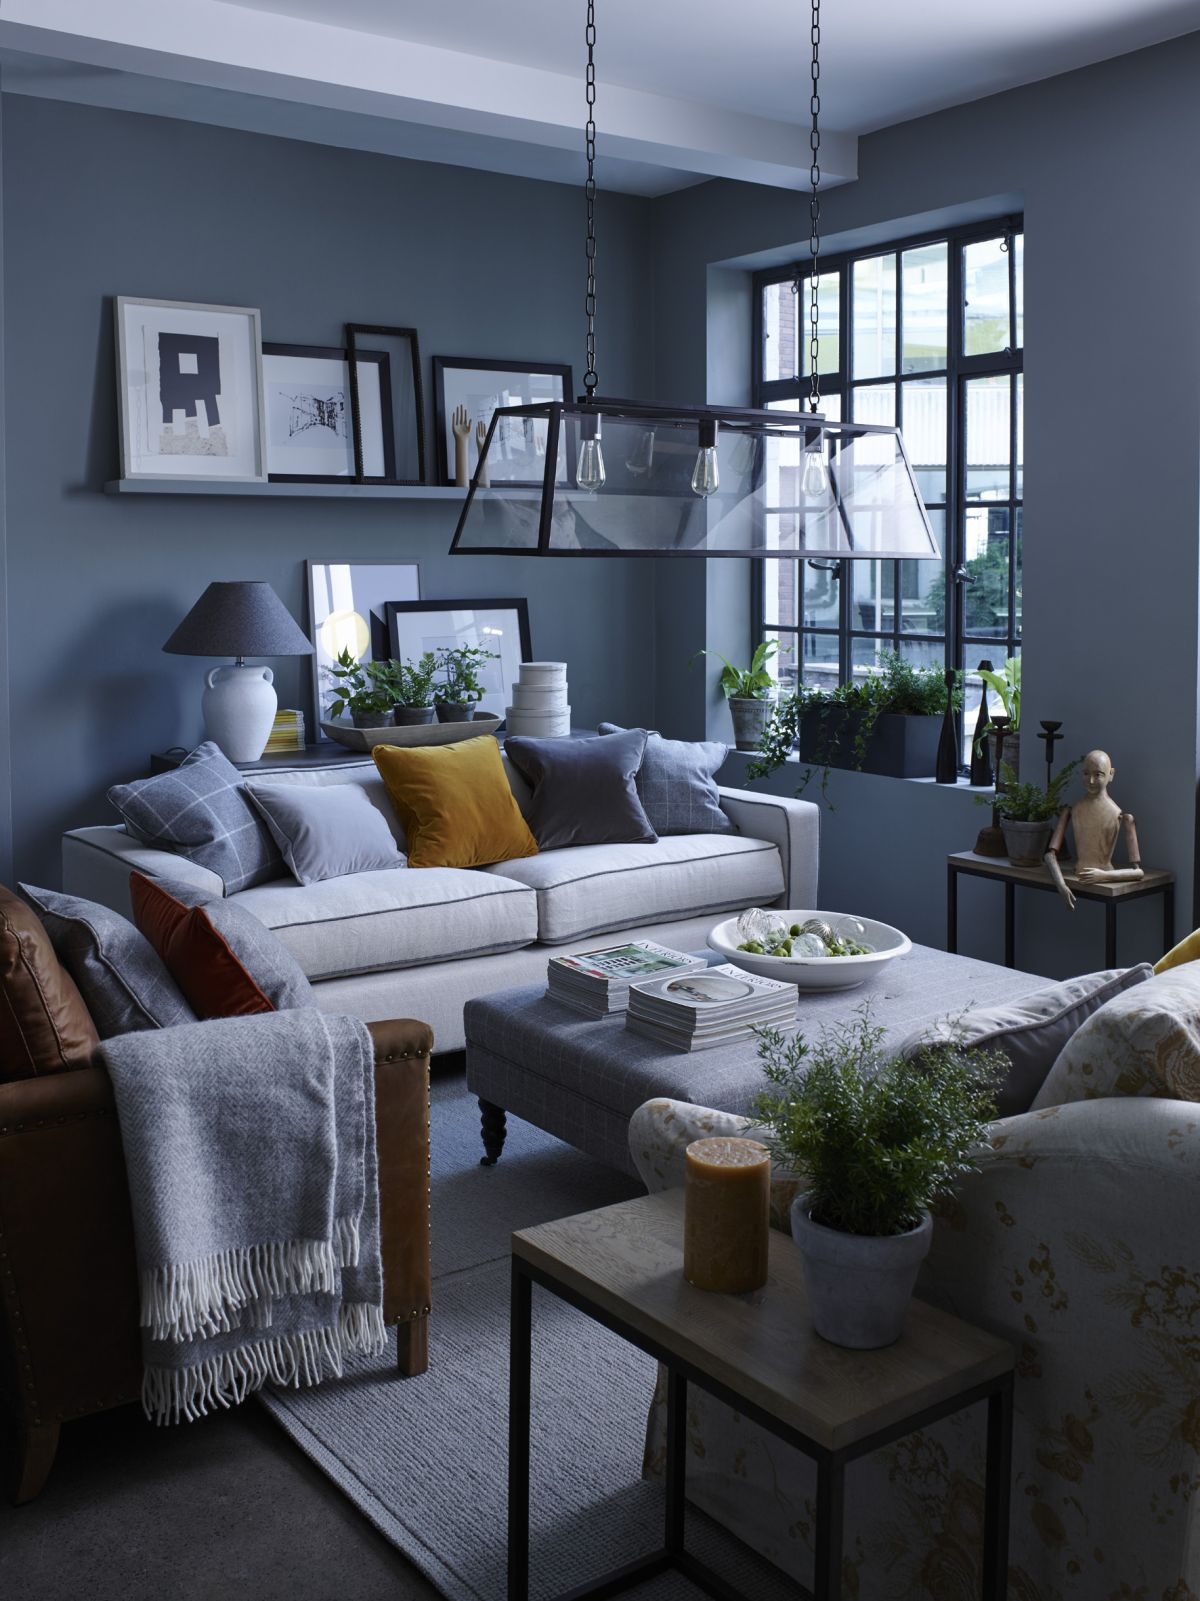 Grey living room ideas 35 ways to use Pinterest&39;s favorite color   Real Homes